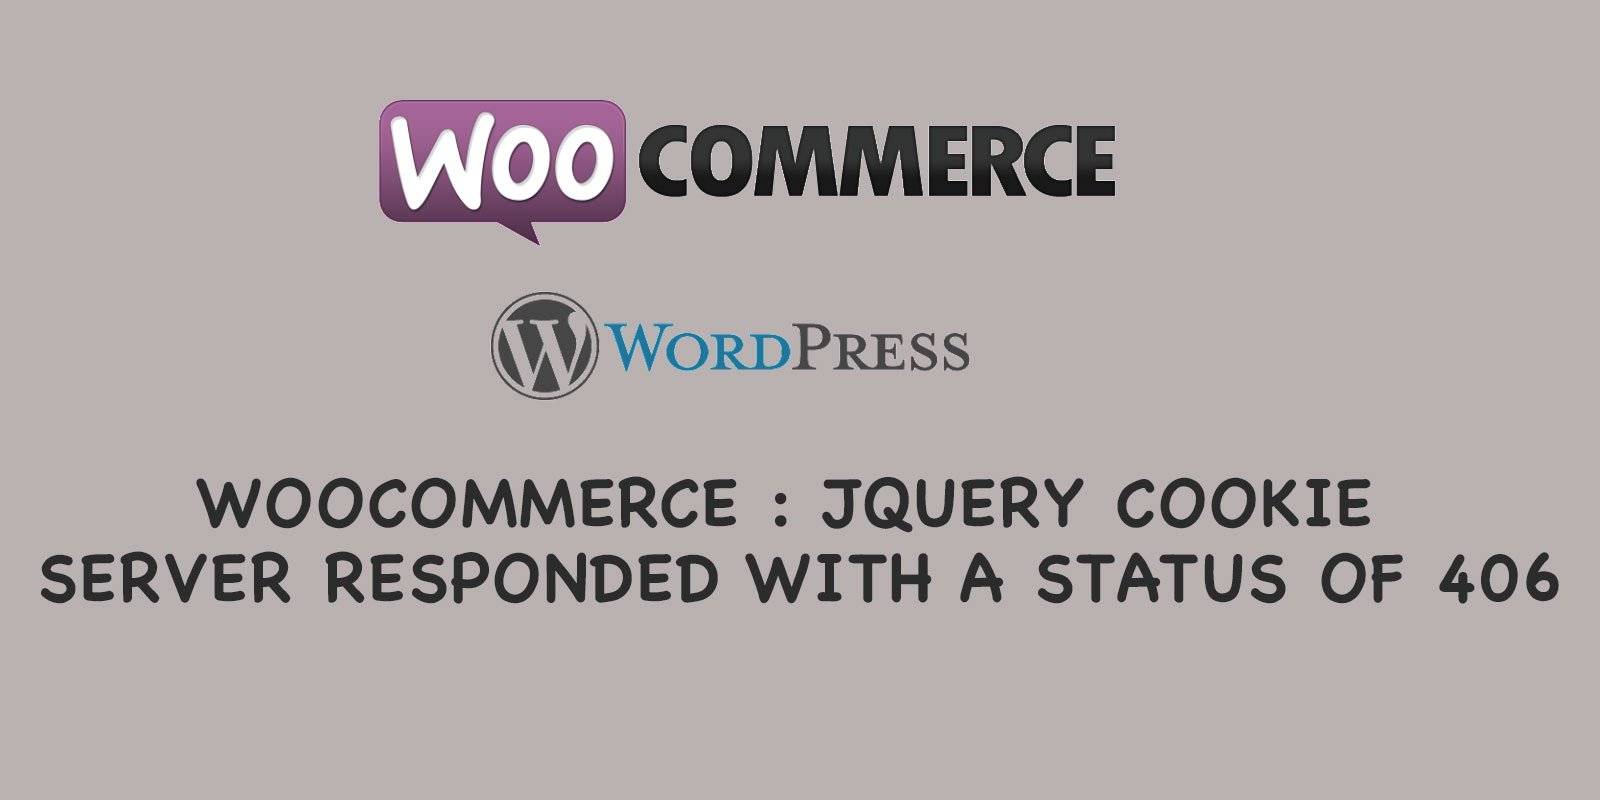 Woocommerce : jQuery cookie server responded with a status of 406